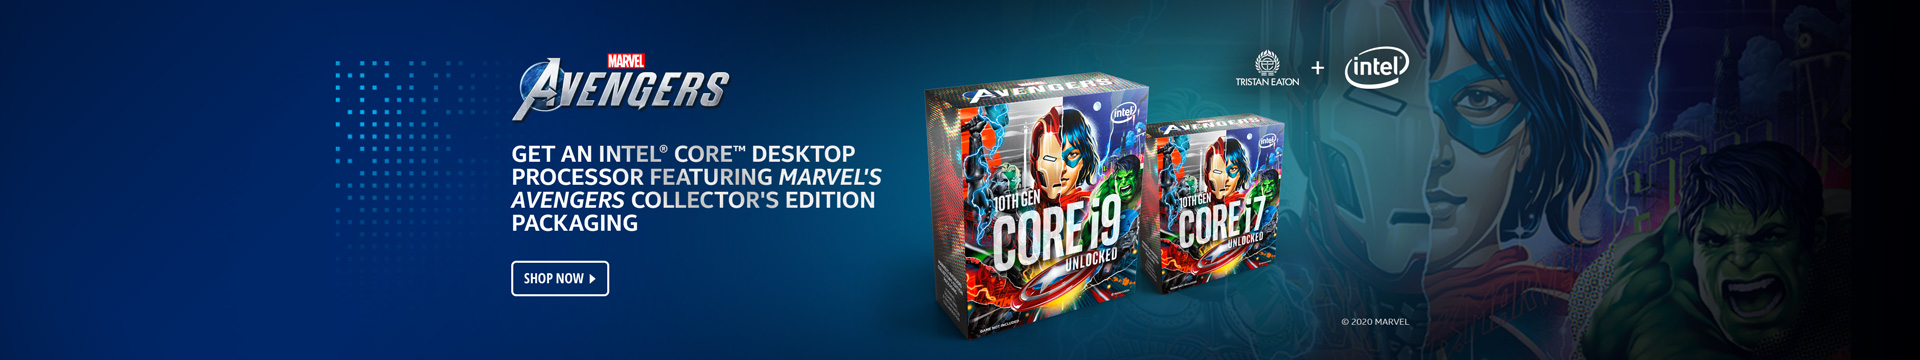 Intel Avengers Collector's Edition